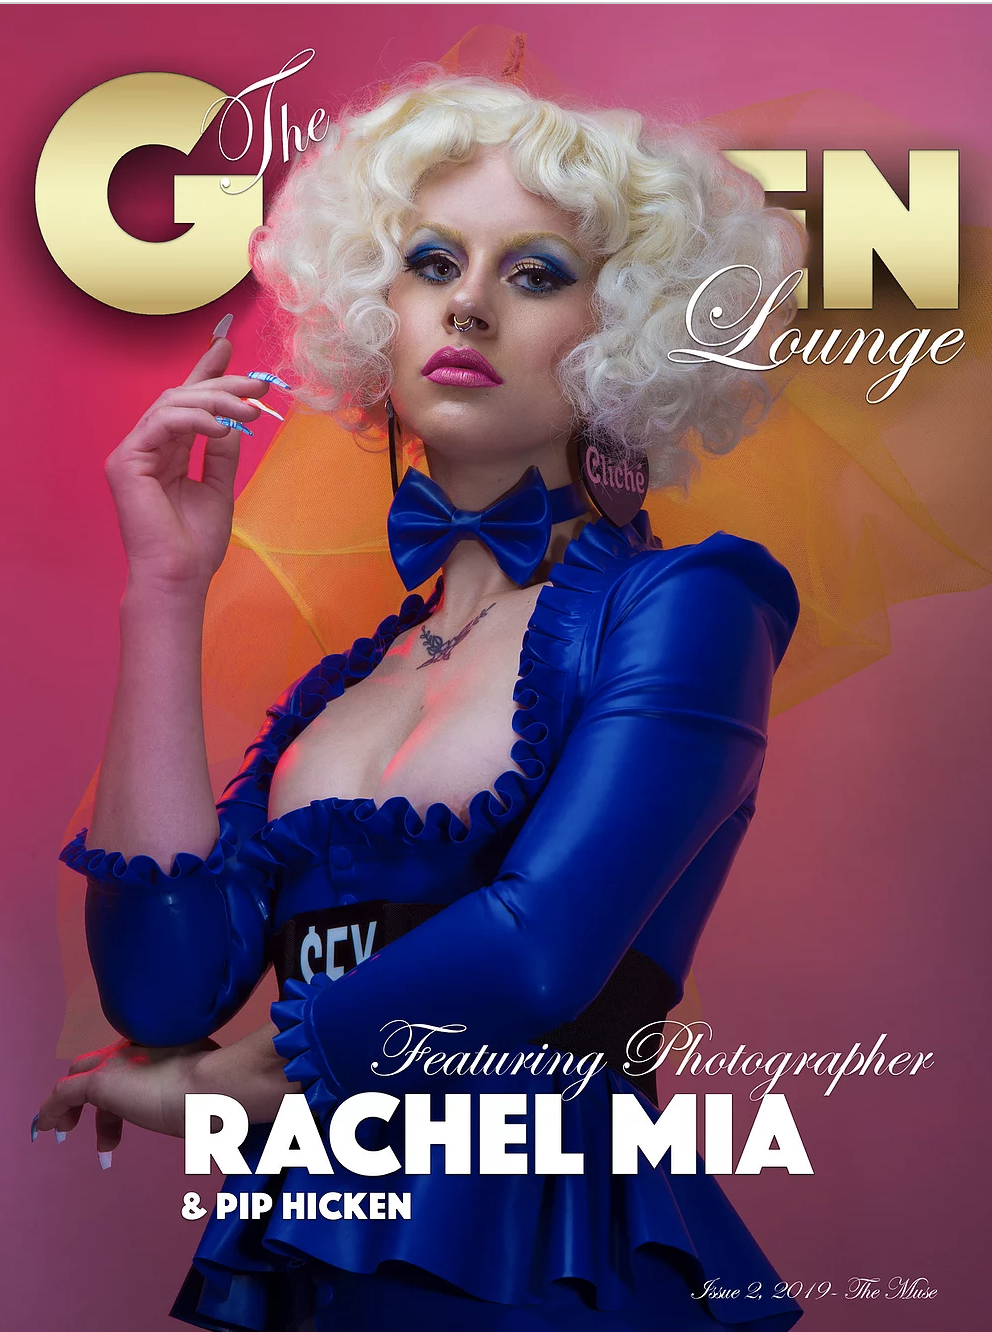 The House of Hats Featured in The Golden Lounge magazine 2019 Hats Sydney .png